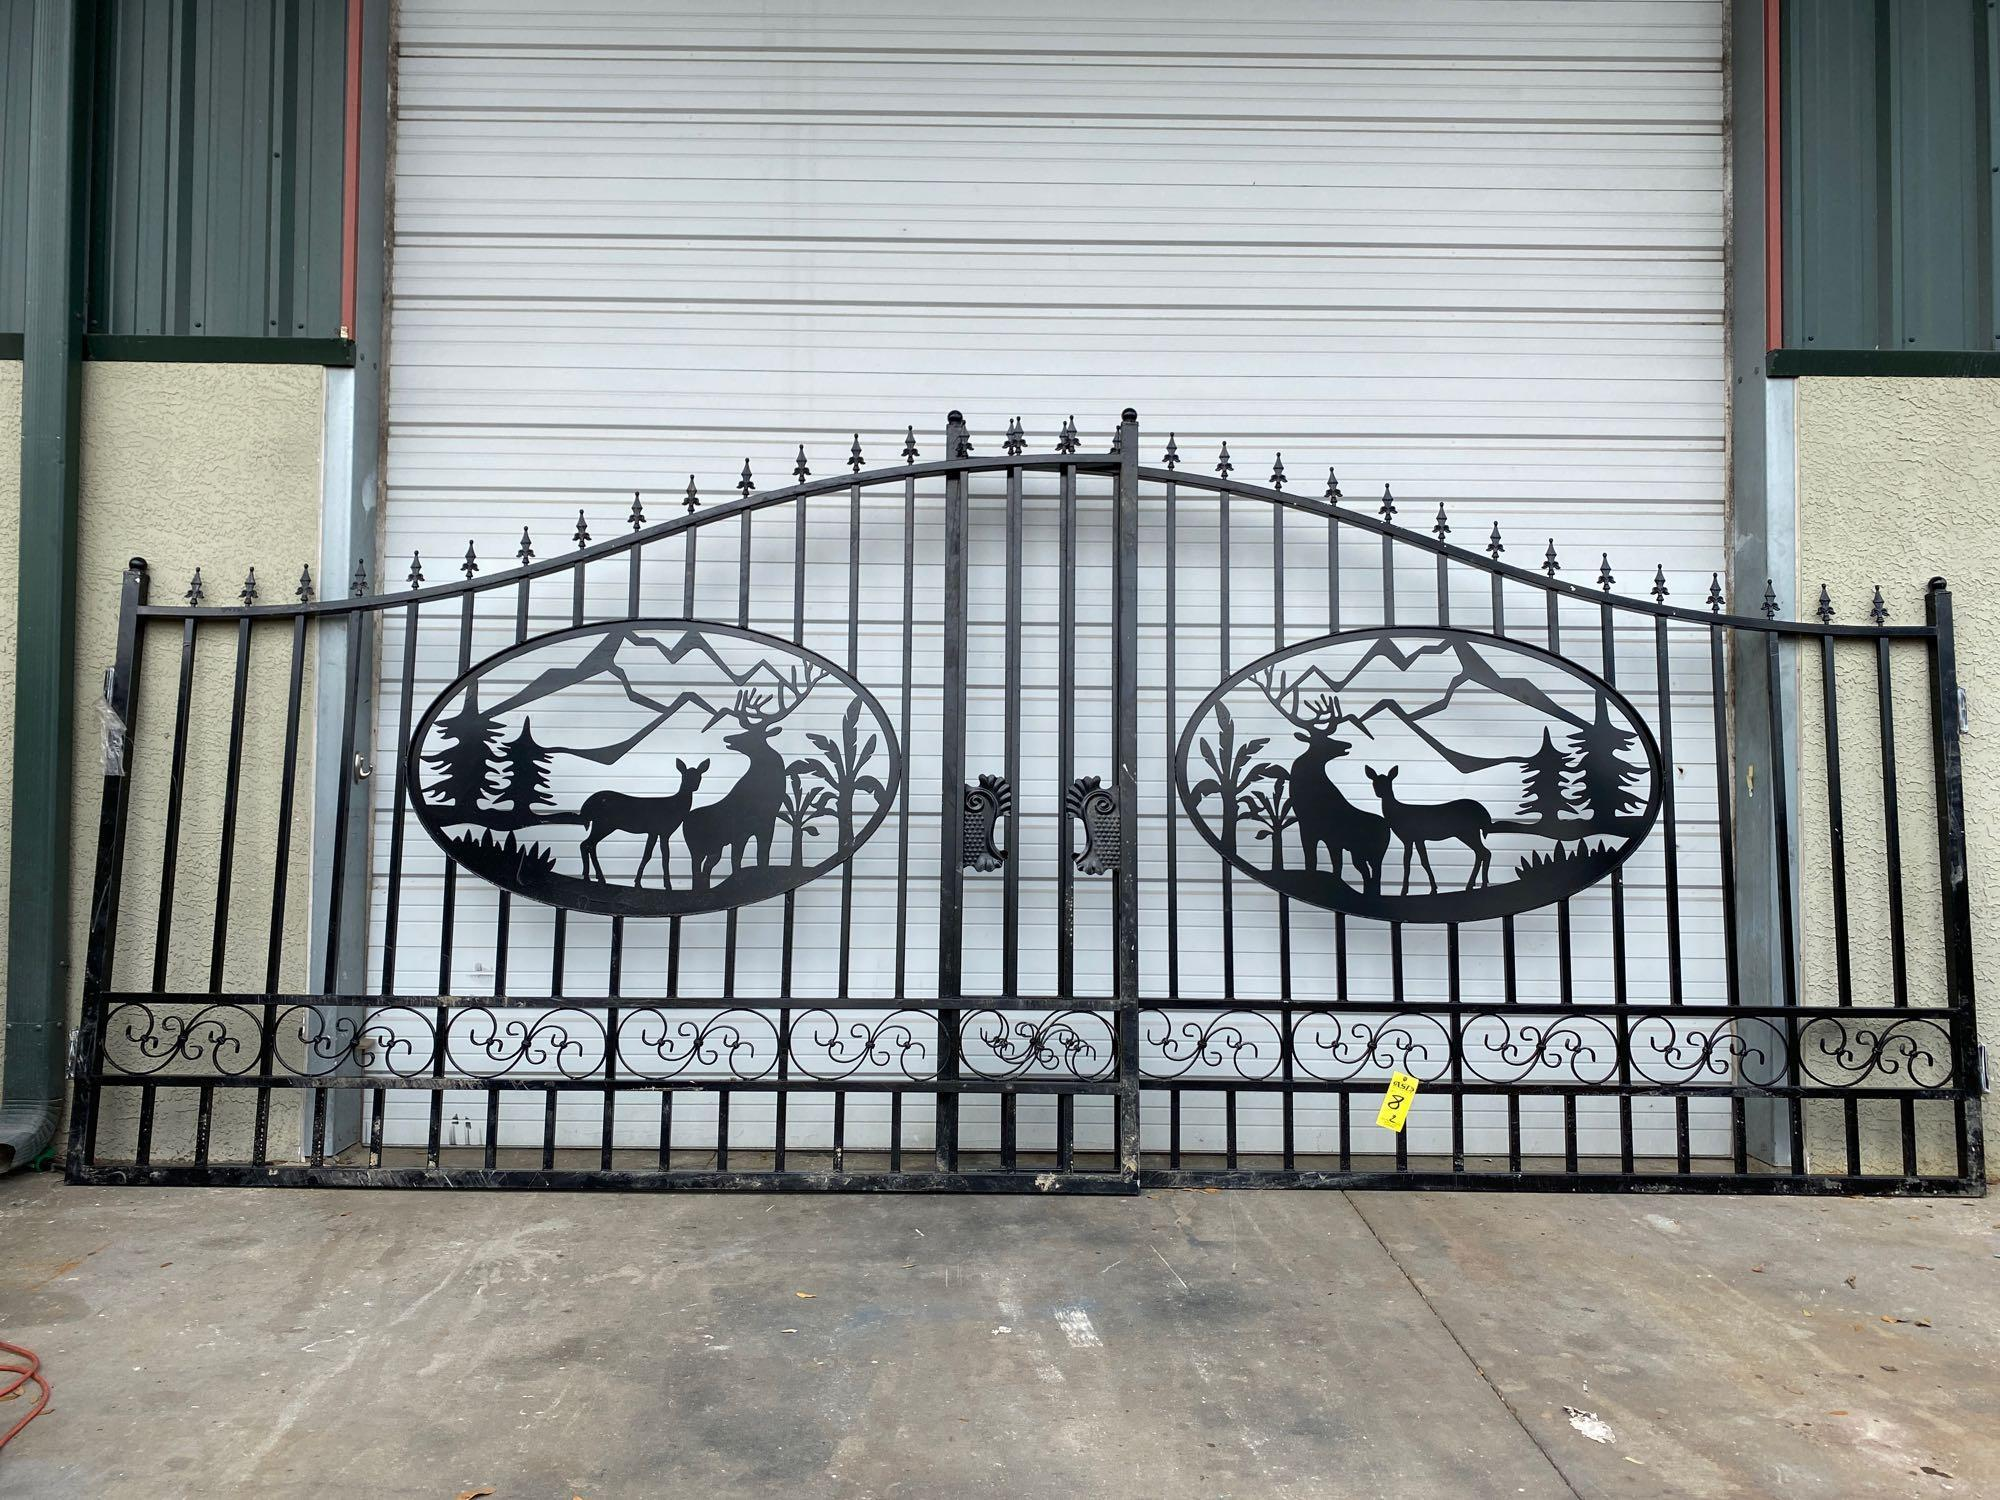 "NEW 20' BI-PARTING GATES, 10' EACH GATE, 90"" MAX HEIGHT"